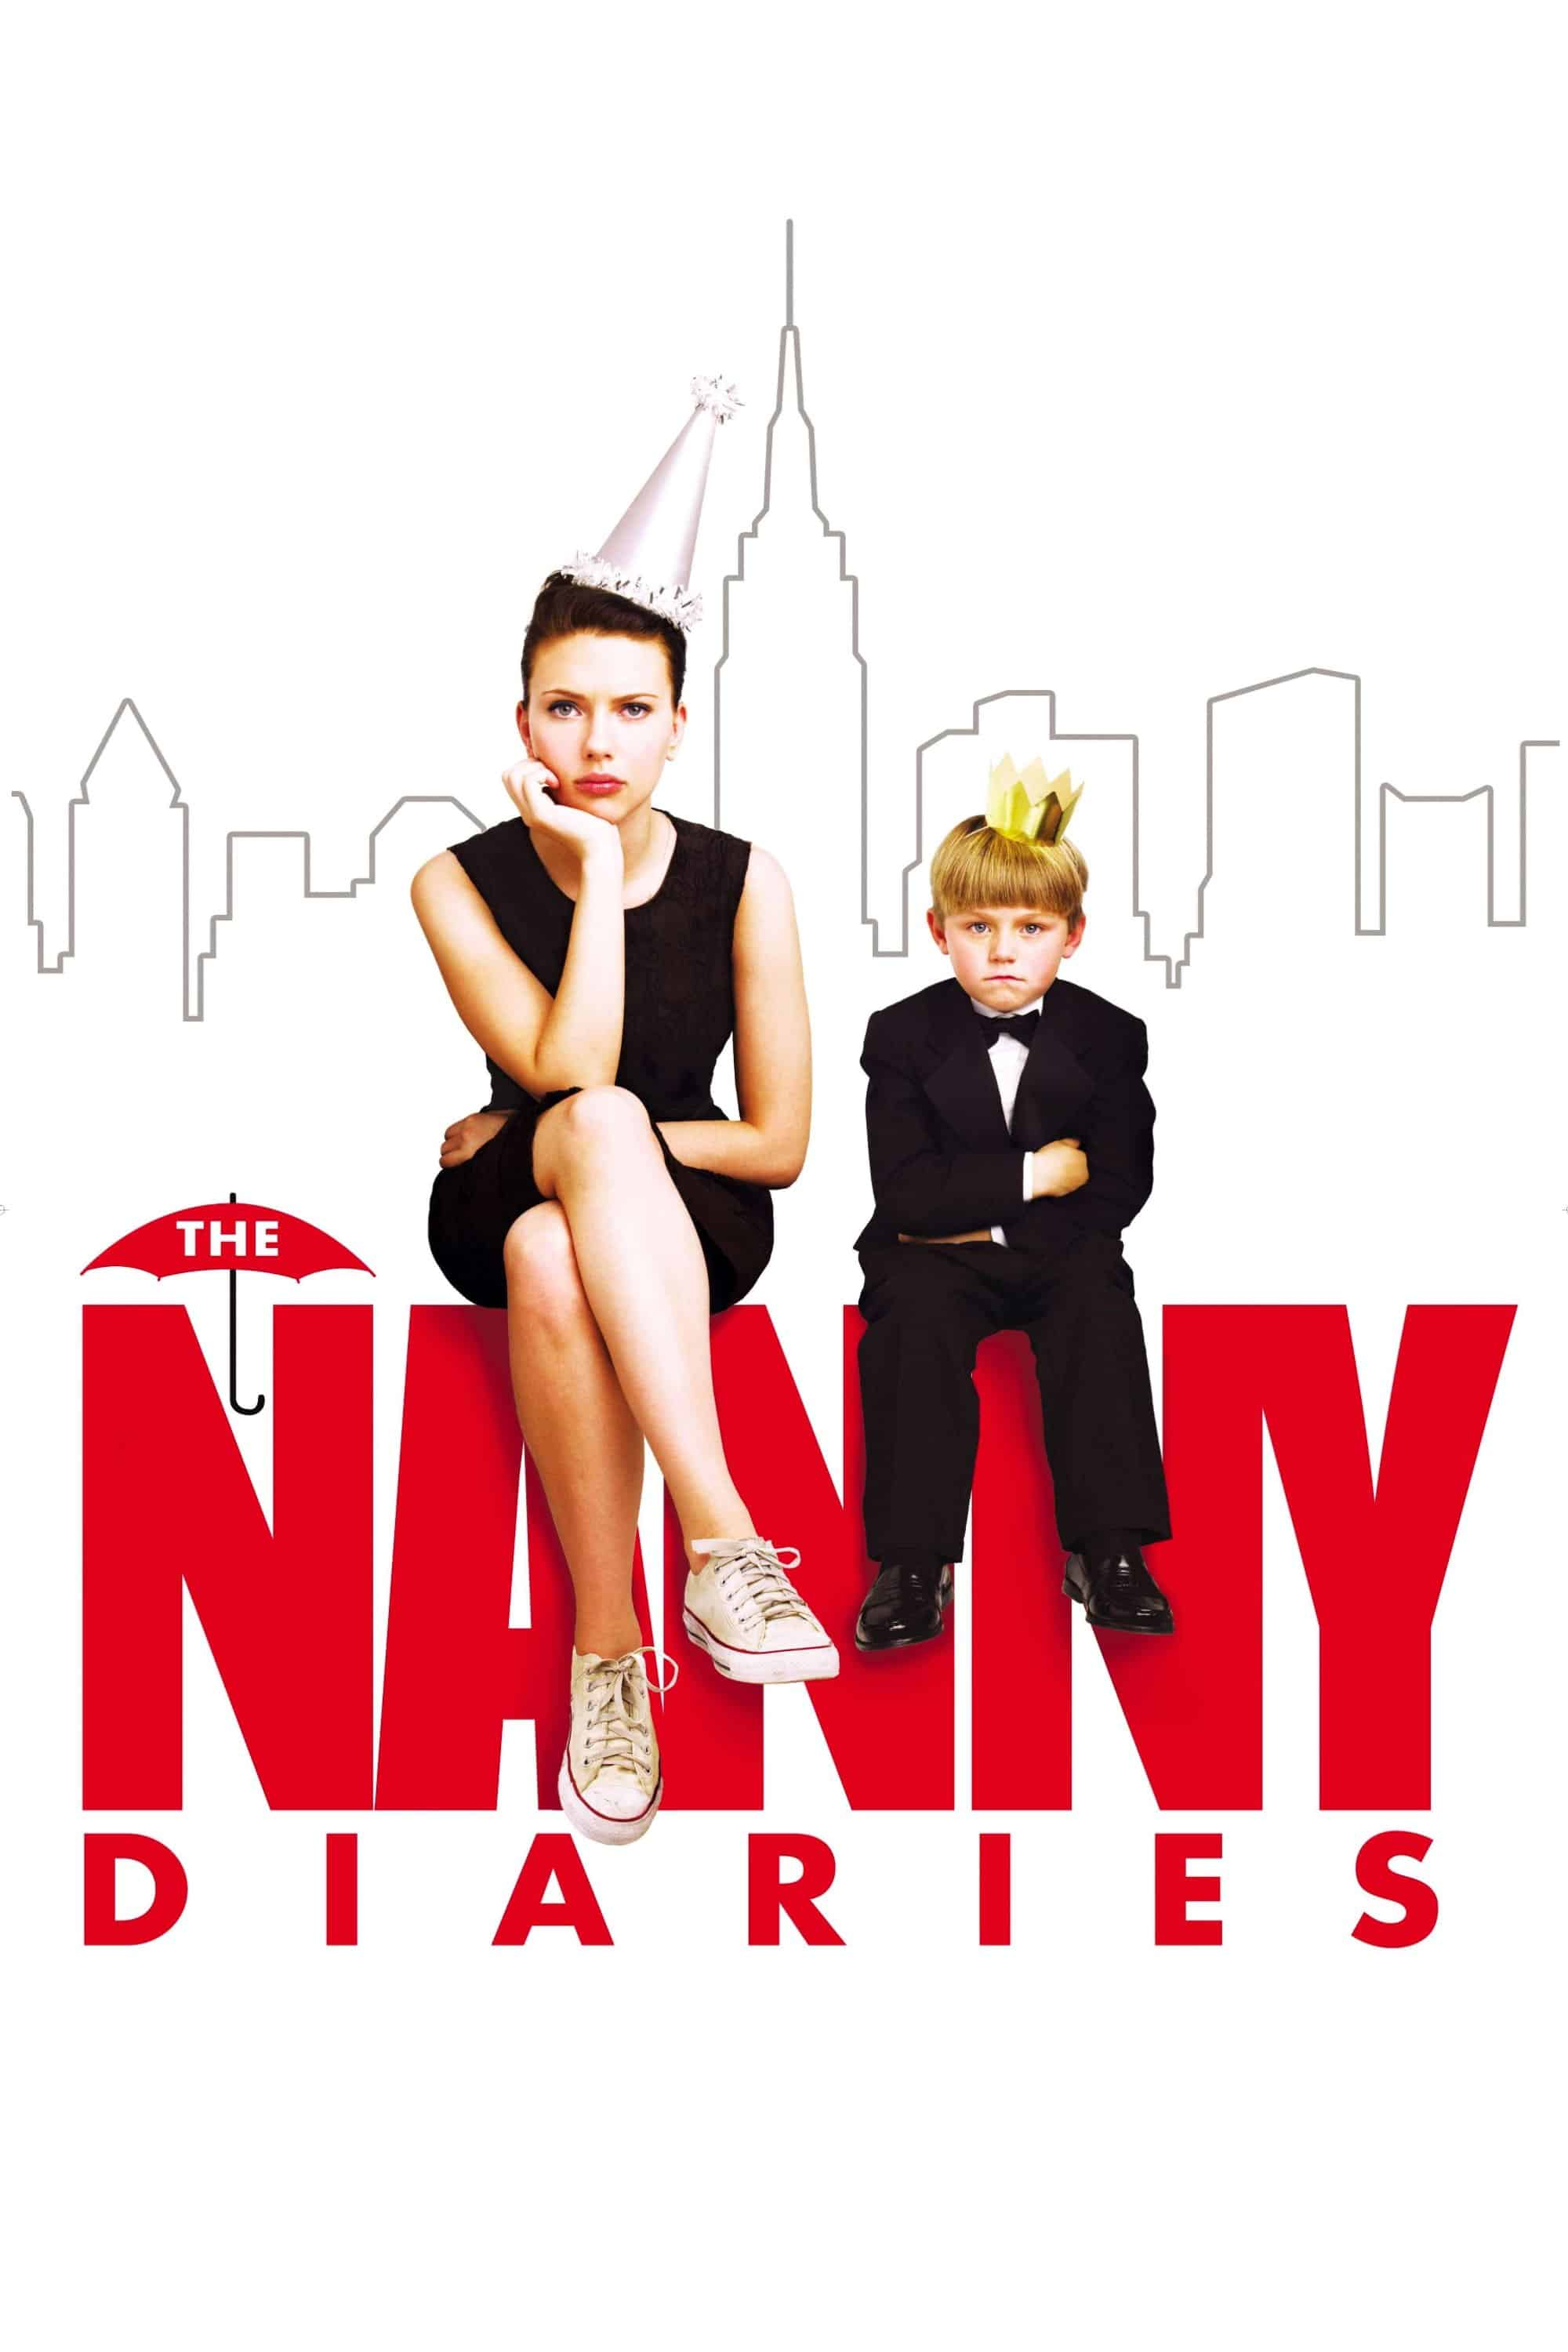 The Nanny Diaries, 2007